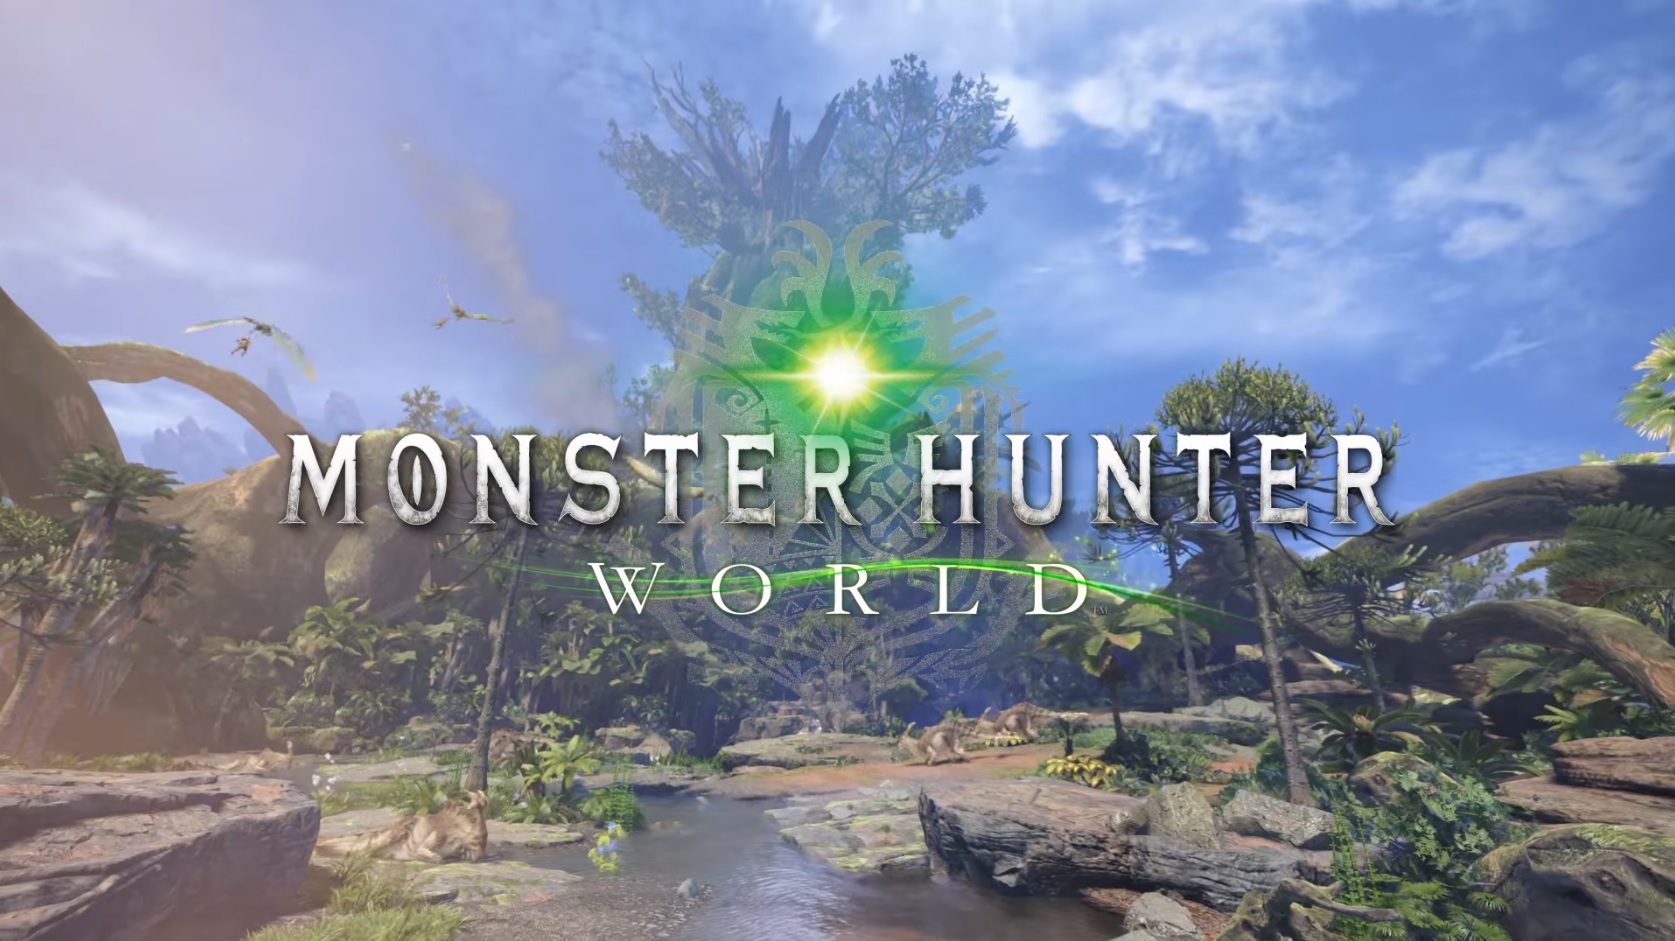 Monster-Hunter-World-Title.jpg